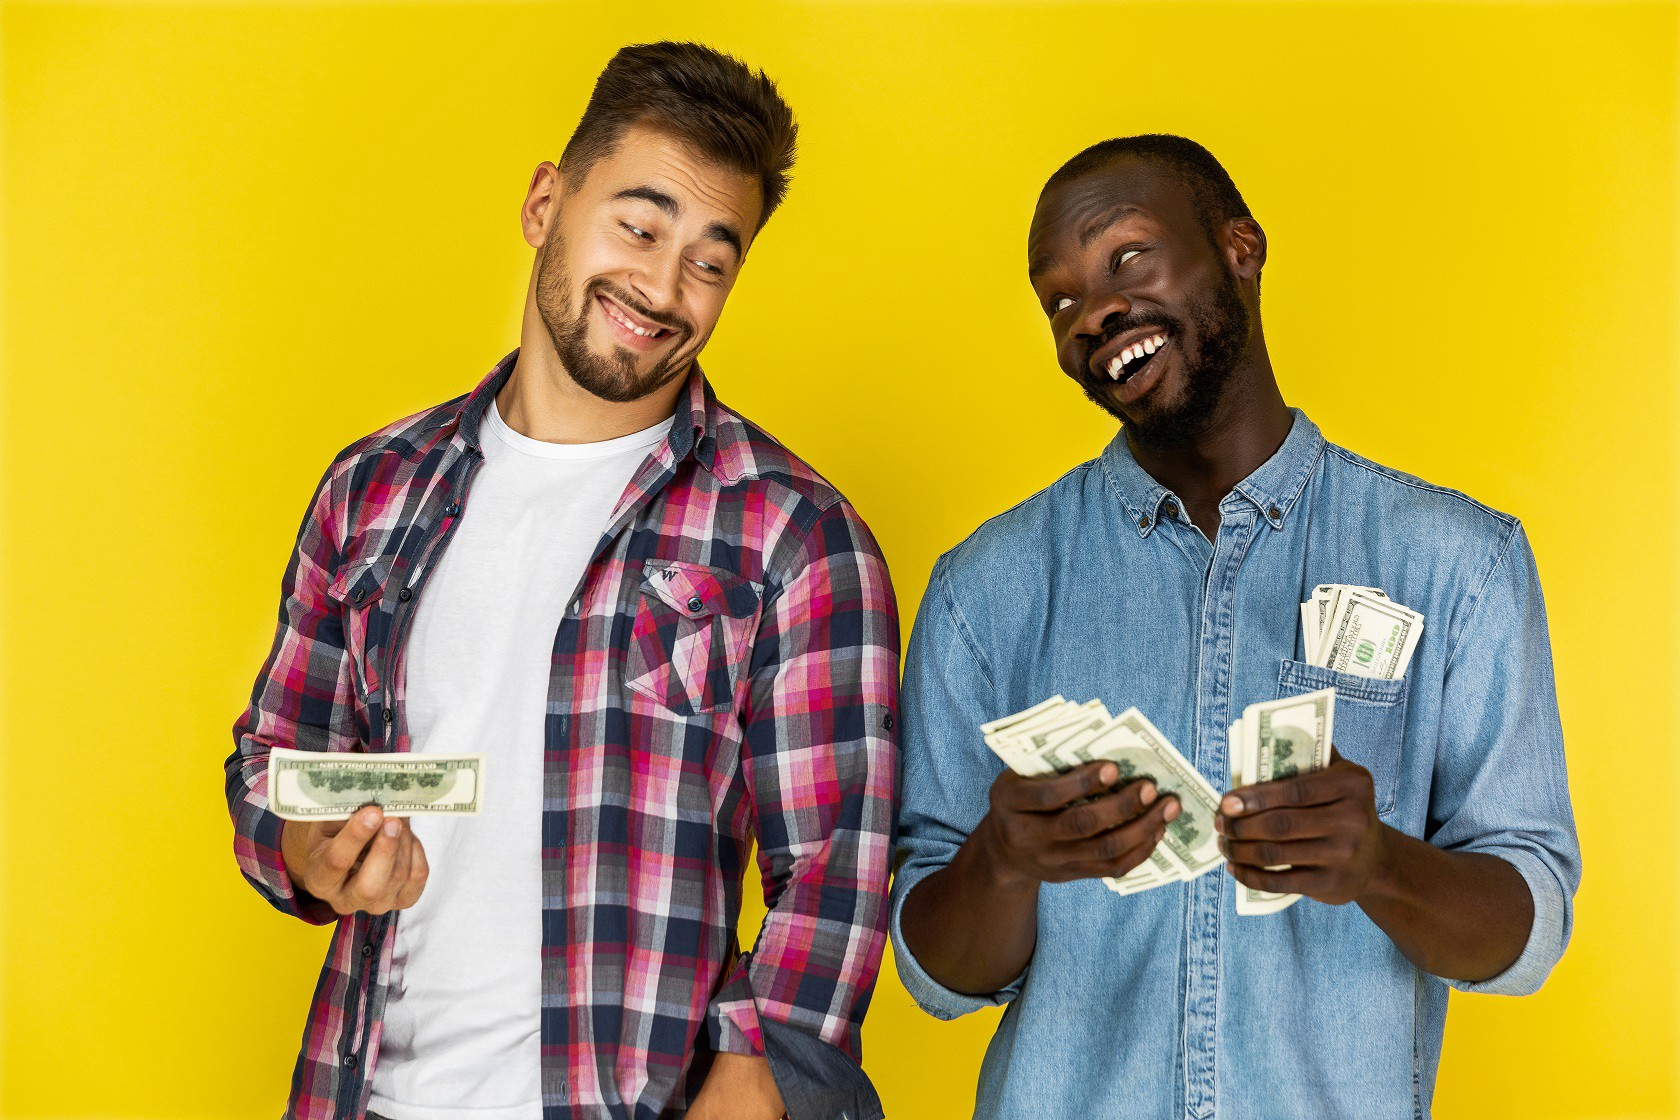 Two men smiling while holding money with a yellow background